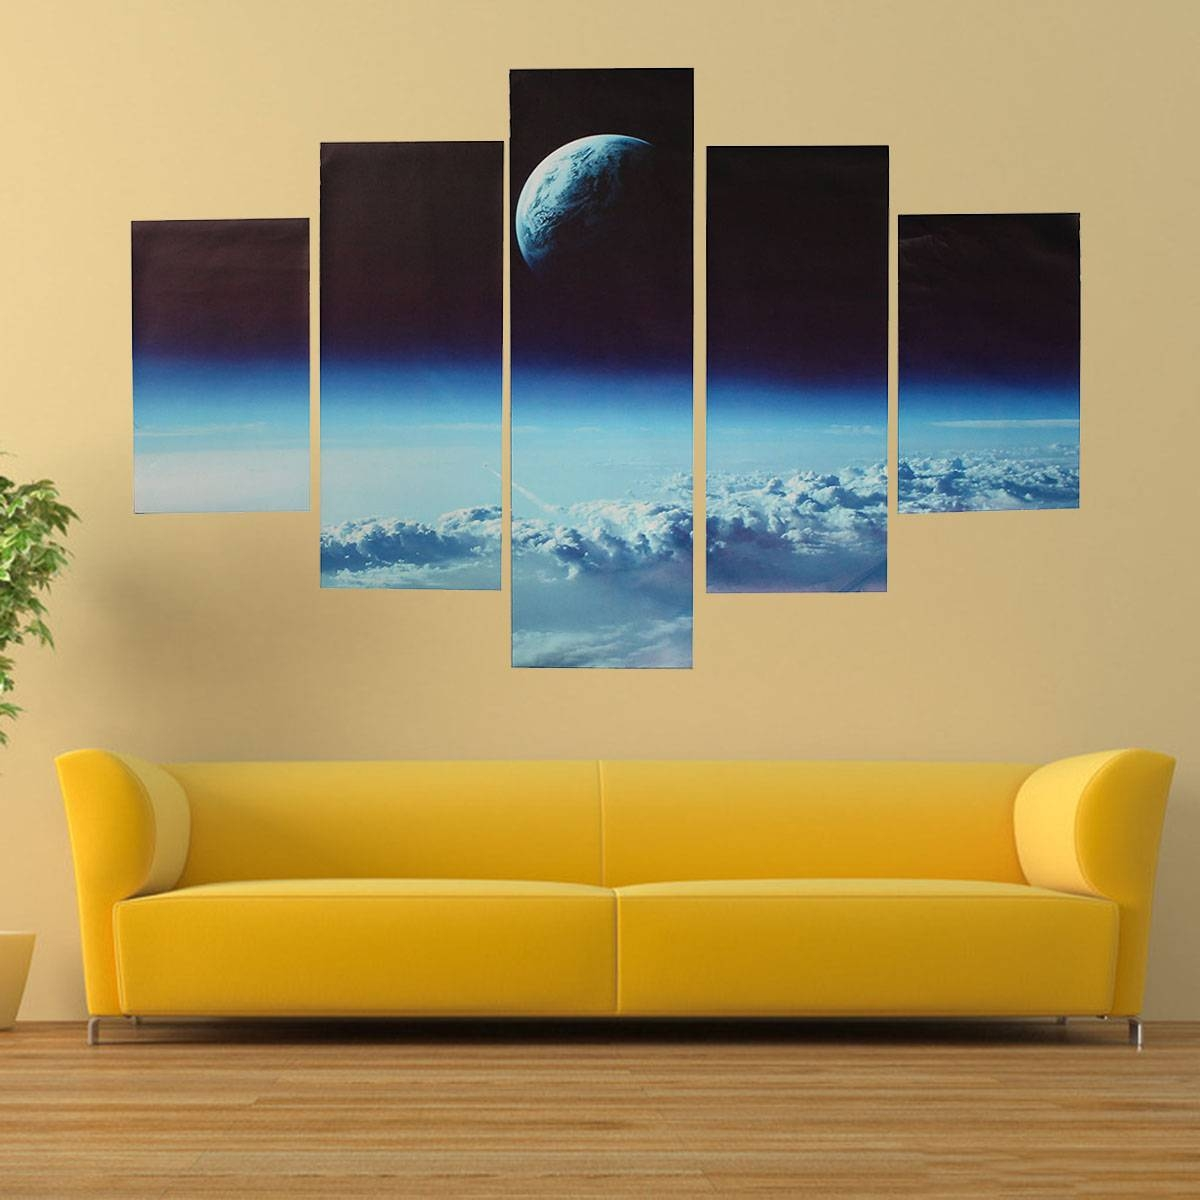 5pcs Canvas Print Painting Cloud Veil Outer Space Modern Wall Art With Regard To Most Up To Date Outer Space Wall Art (View 1 of 25)